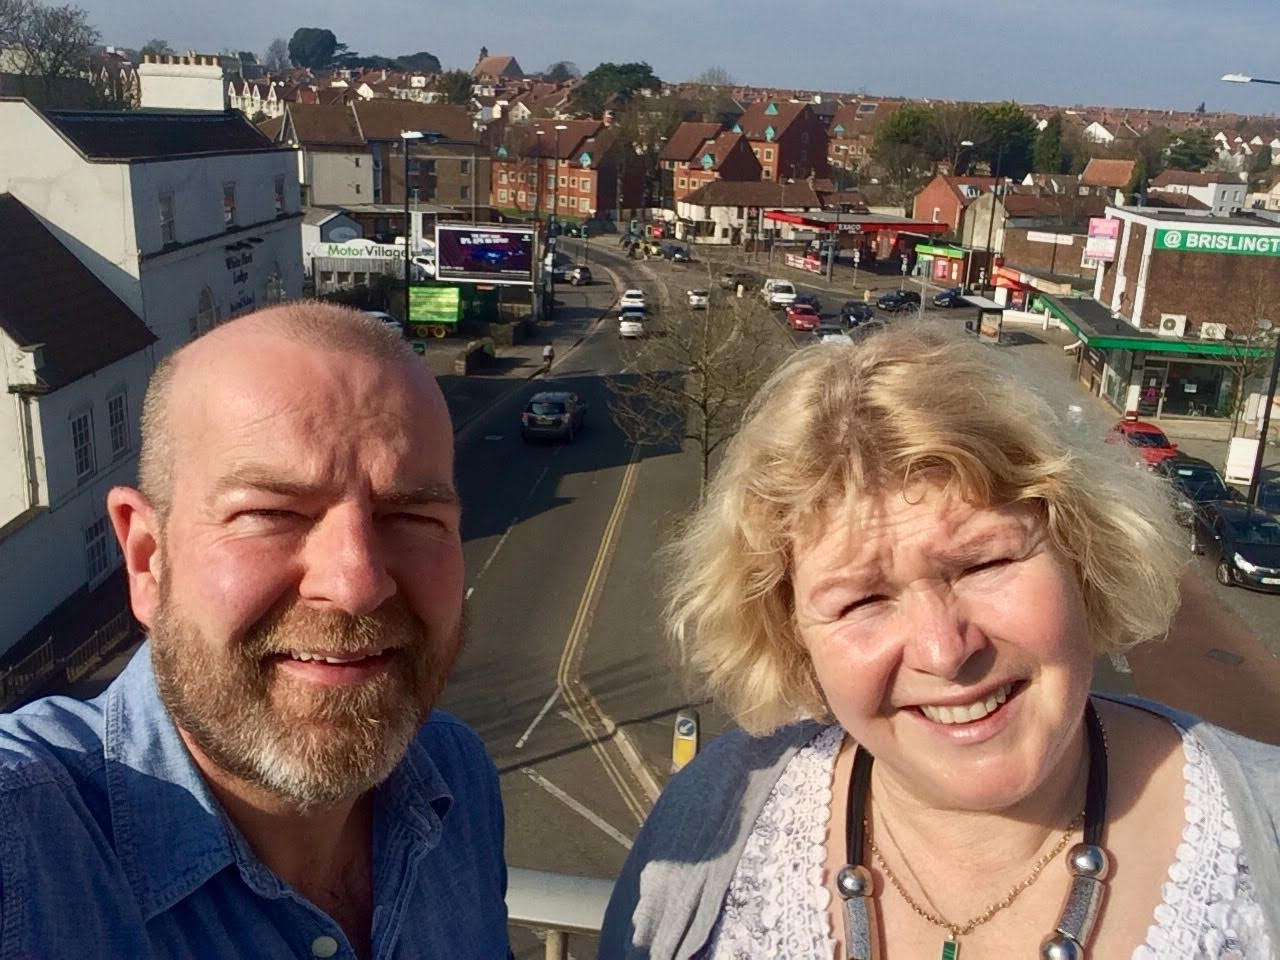 'Andrew and Jos in Brislington Village, where air pollution regularly exceeds acceptable levels'